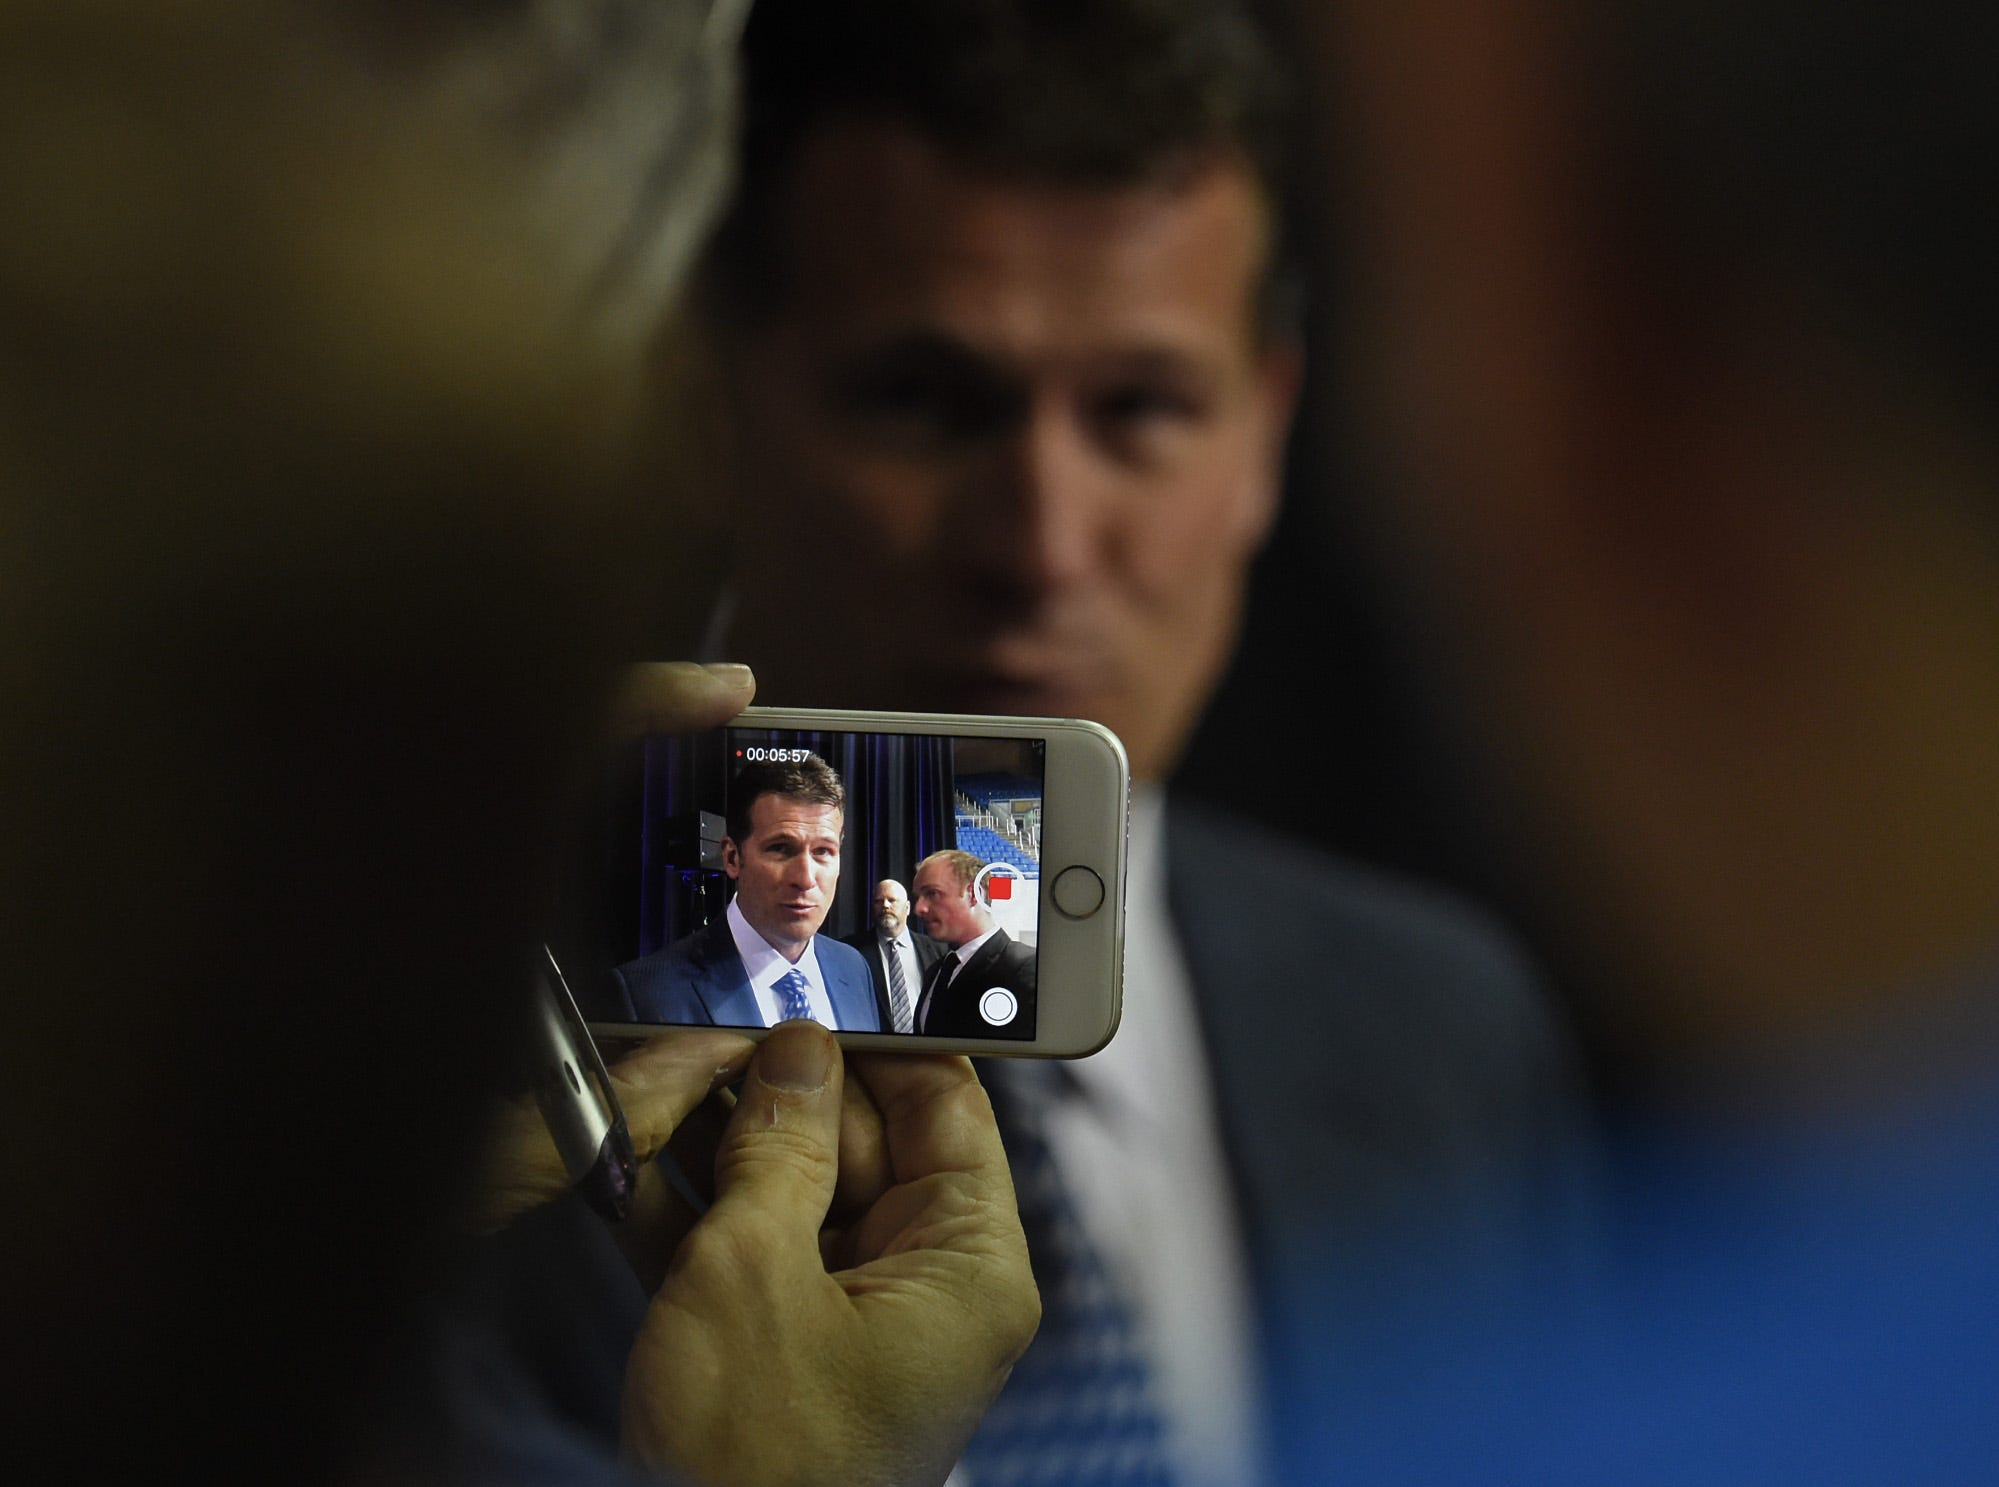 Steve Alford speaks to the media after being introduced as the new Nevada basketball coach during a press conference at Lawlor Events Center in Reno, Nevada on April 12, 2019.